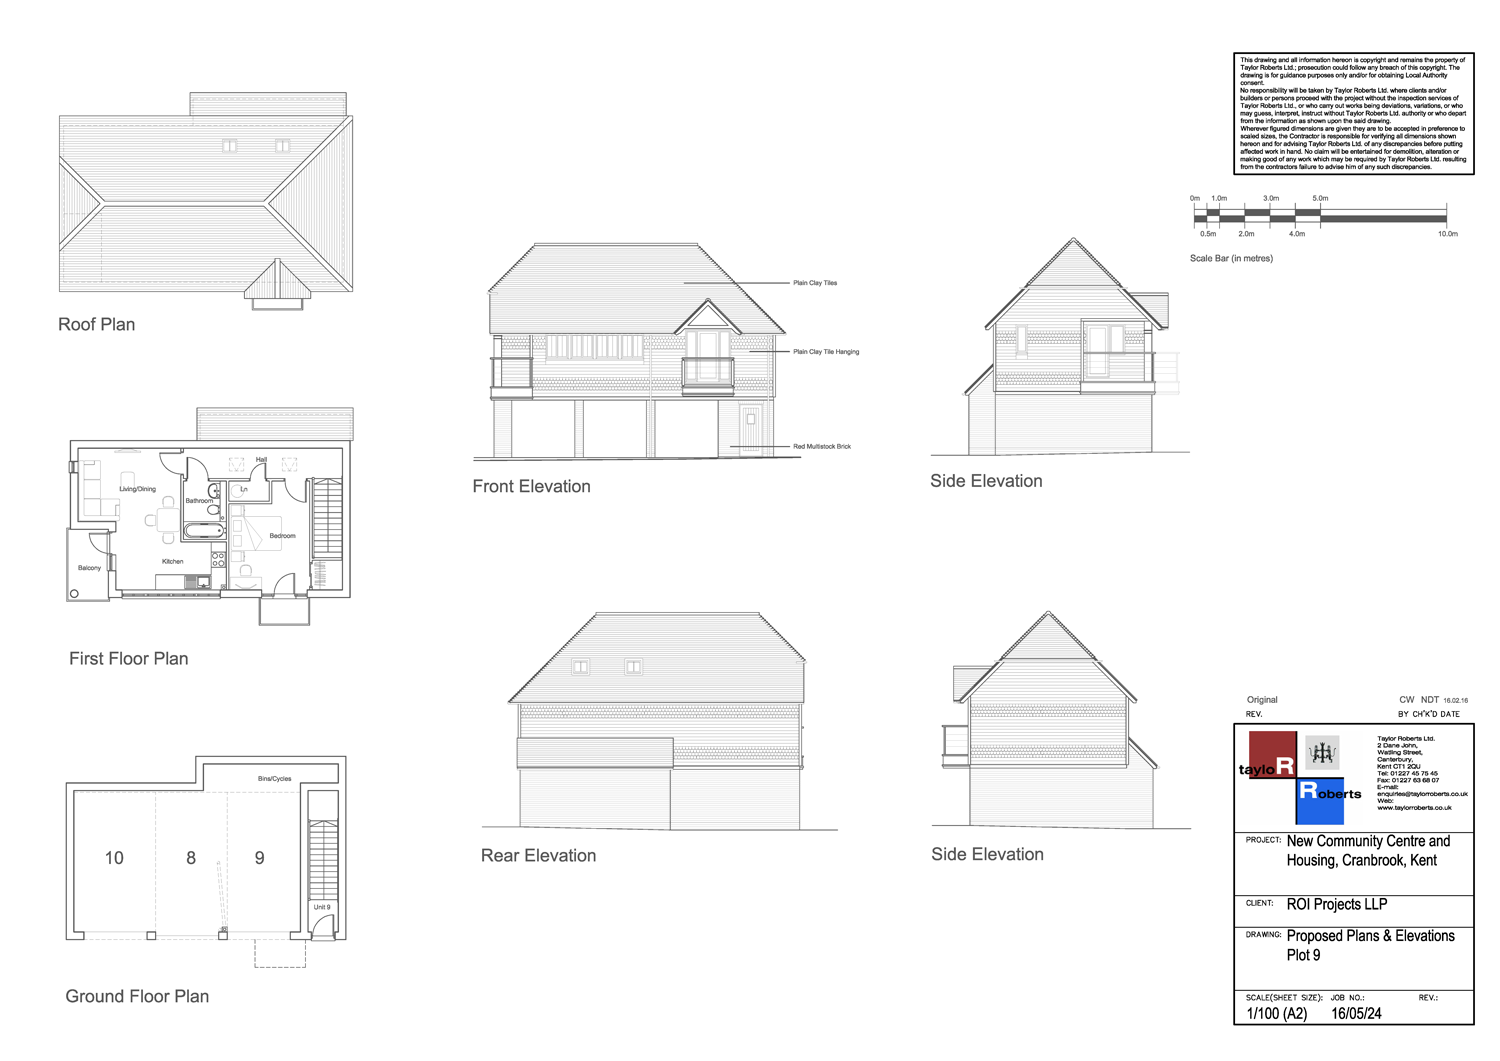 16-05-24---Proposed-Plans-&-Elevations-(Plot-9).png